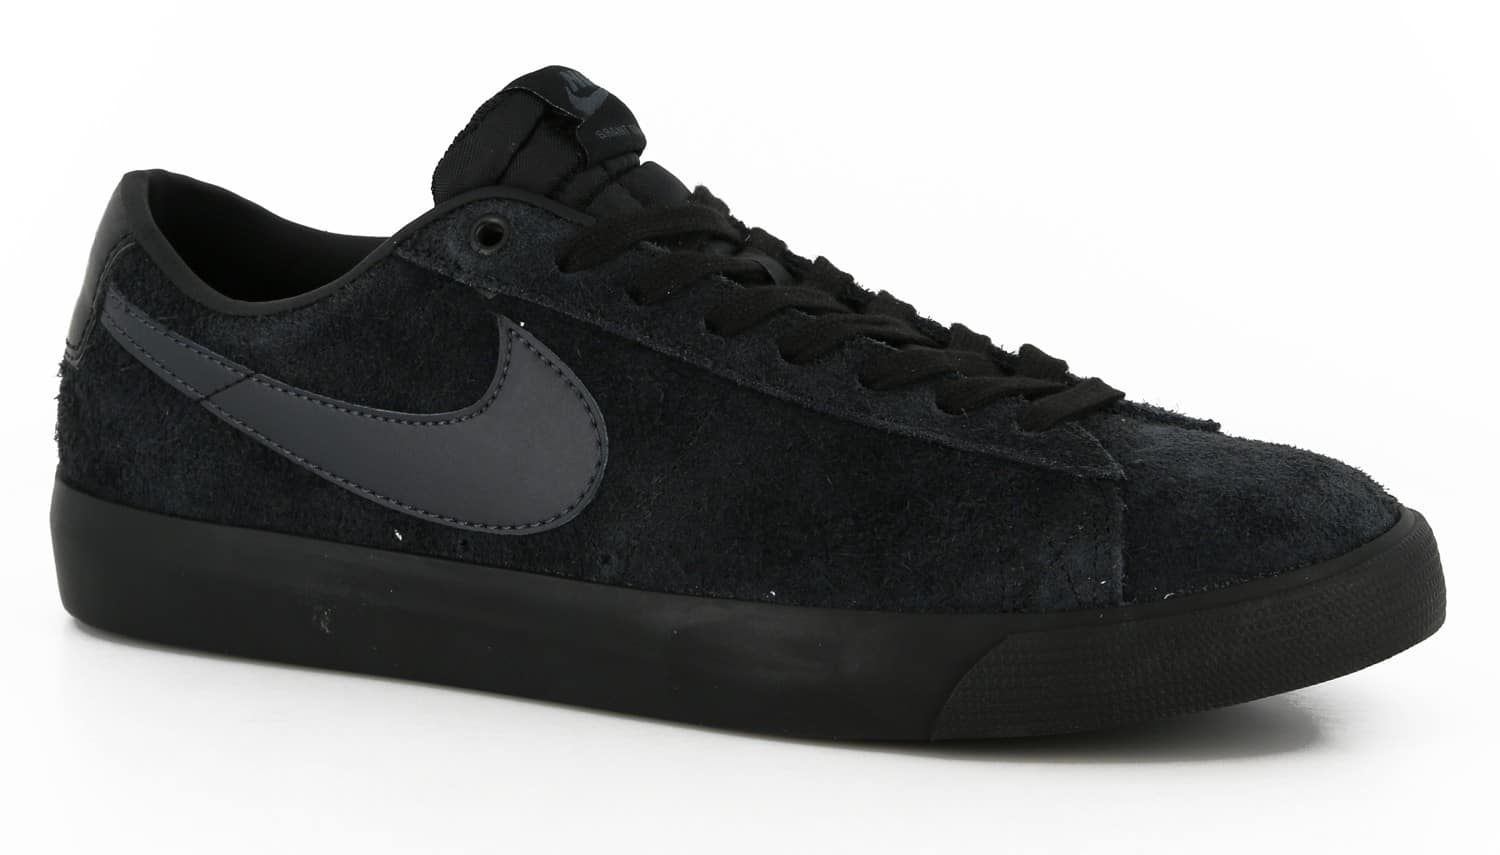 Nike SB Blazer Low GT Skate Shoes blackblackanthracite